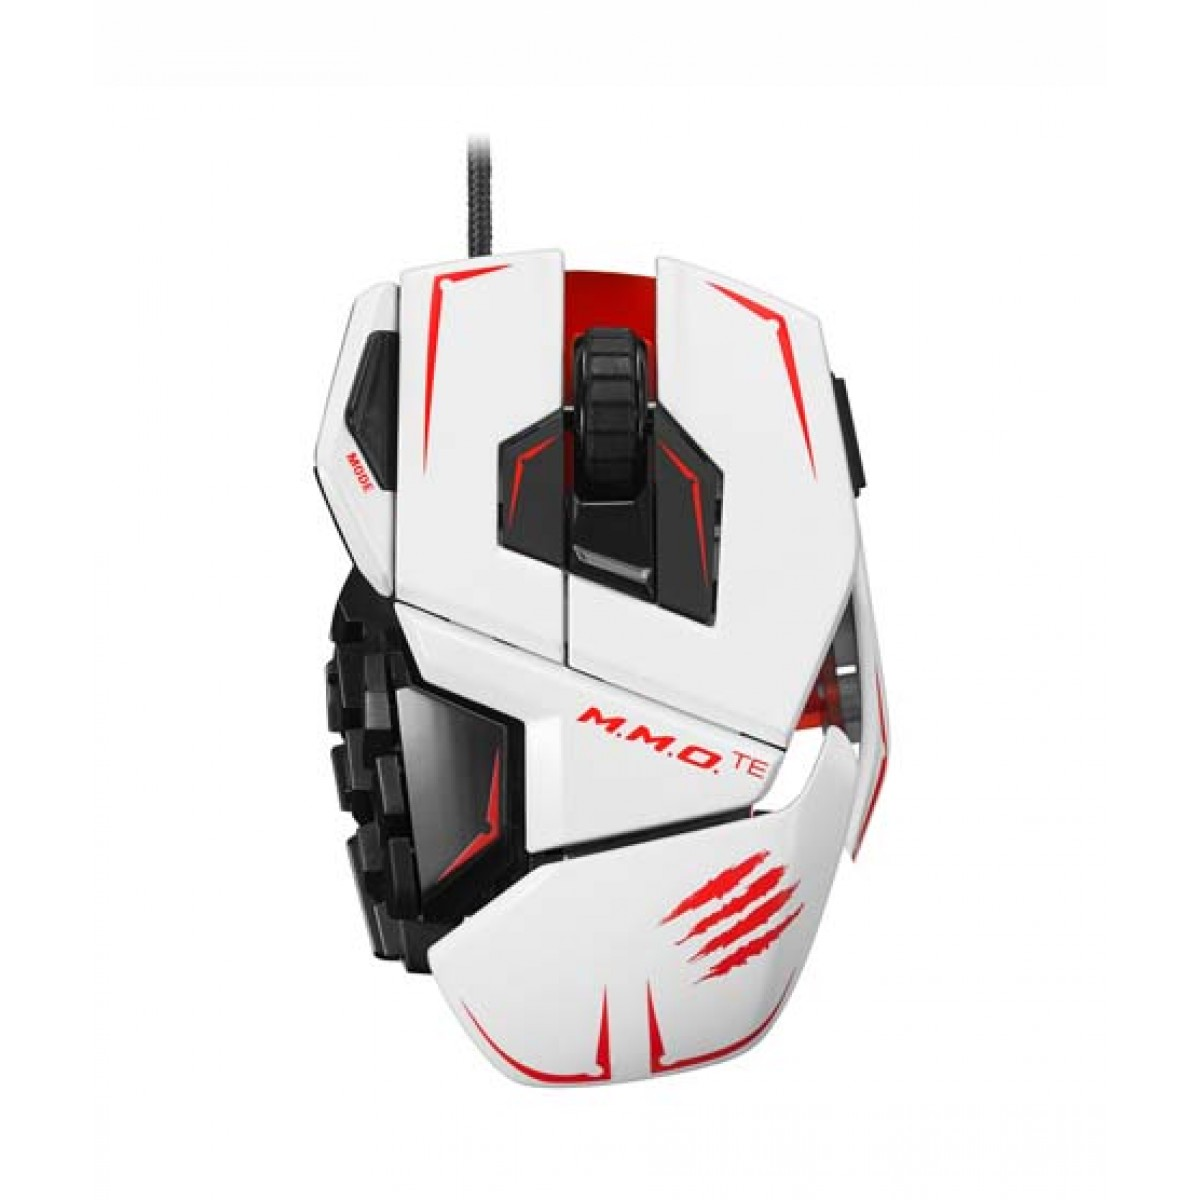 MAD CATZ M.M.O. TE GAMING MOUSE TREIBER